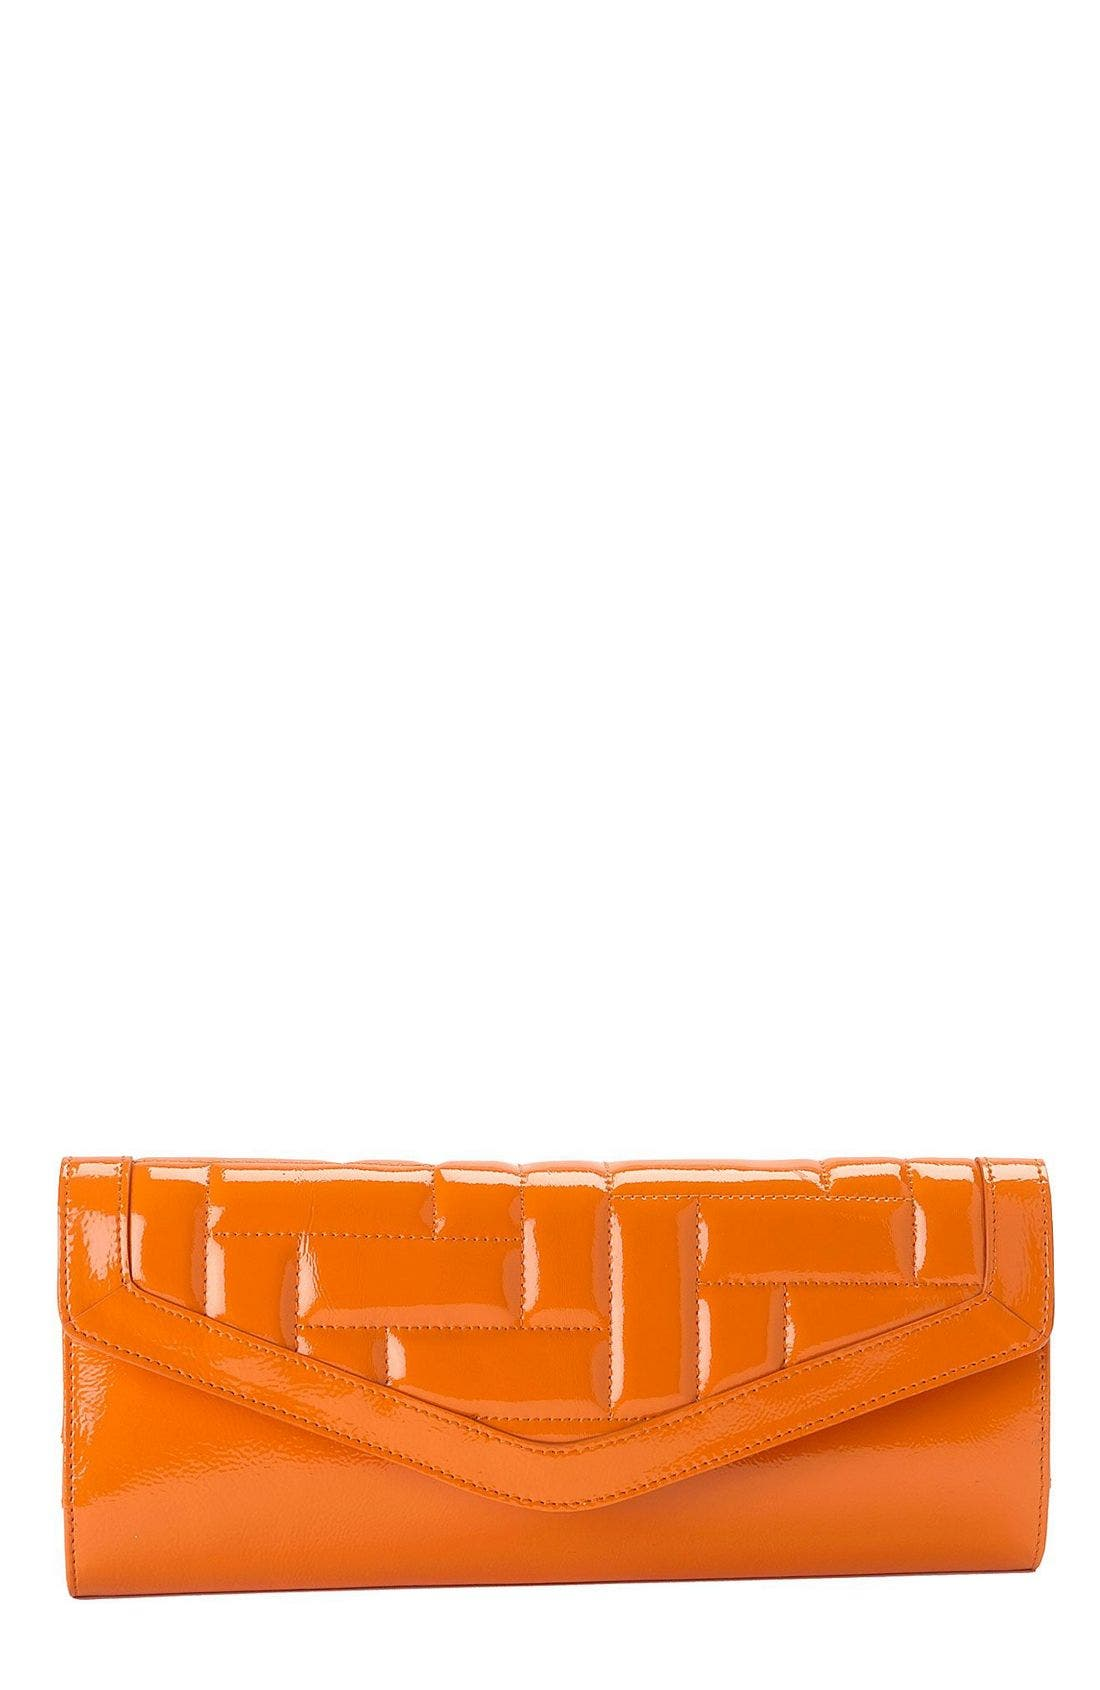 Alternate Image 1 Selected - Hobo Quilted Patent Leather Clutch